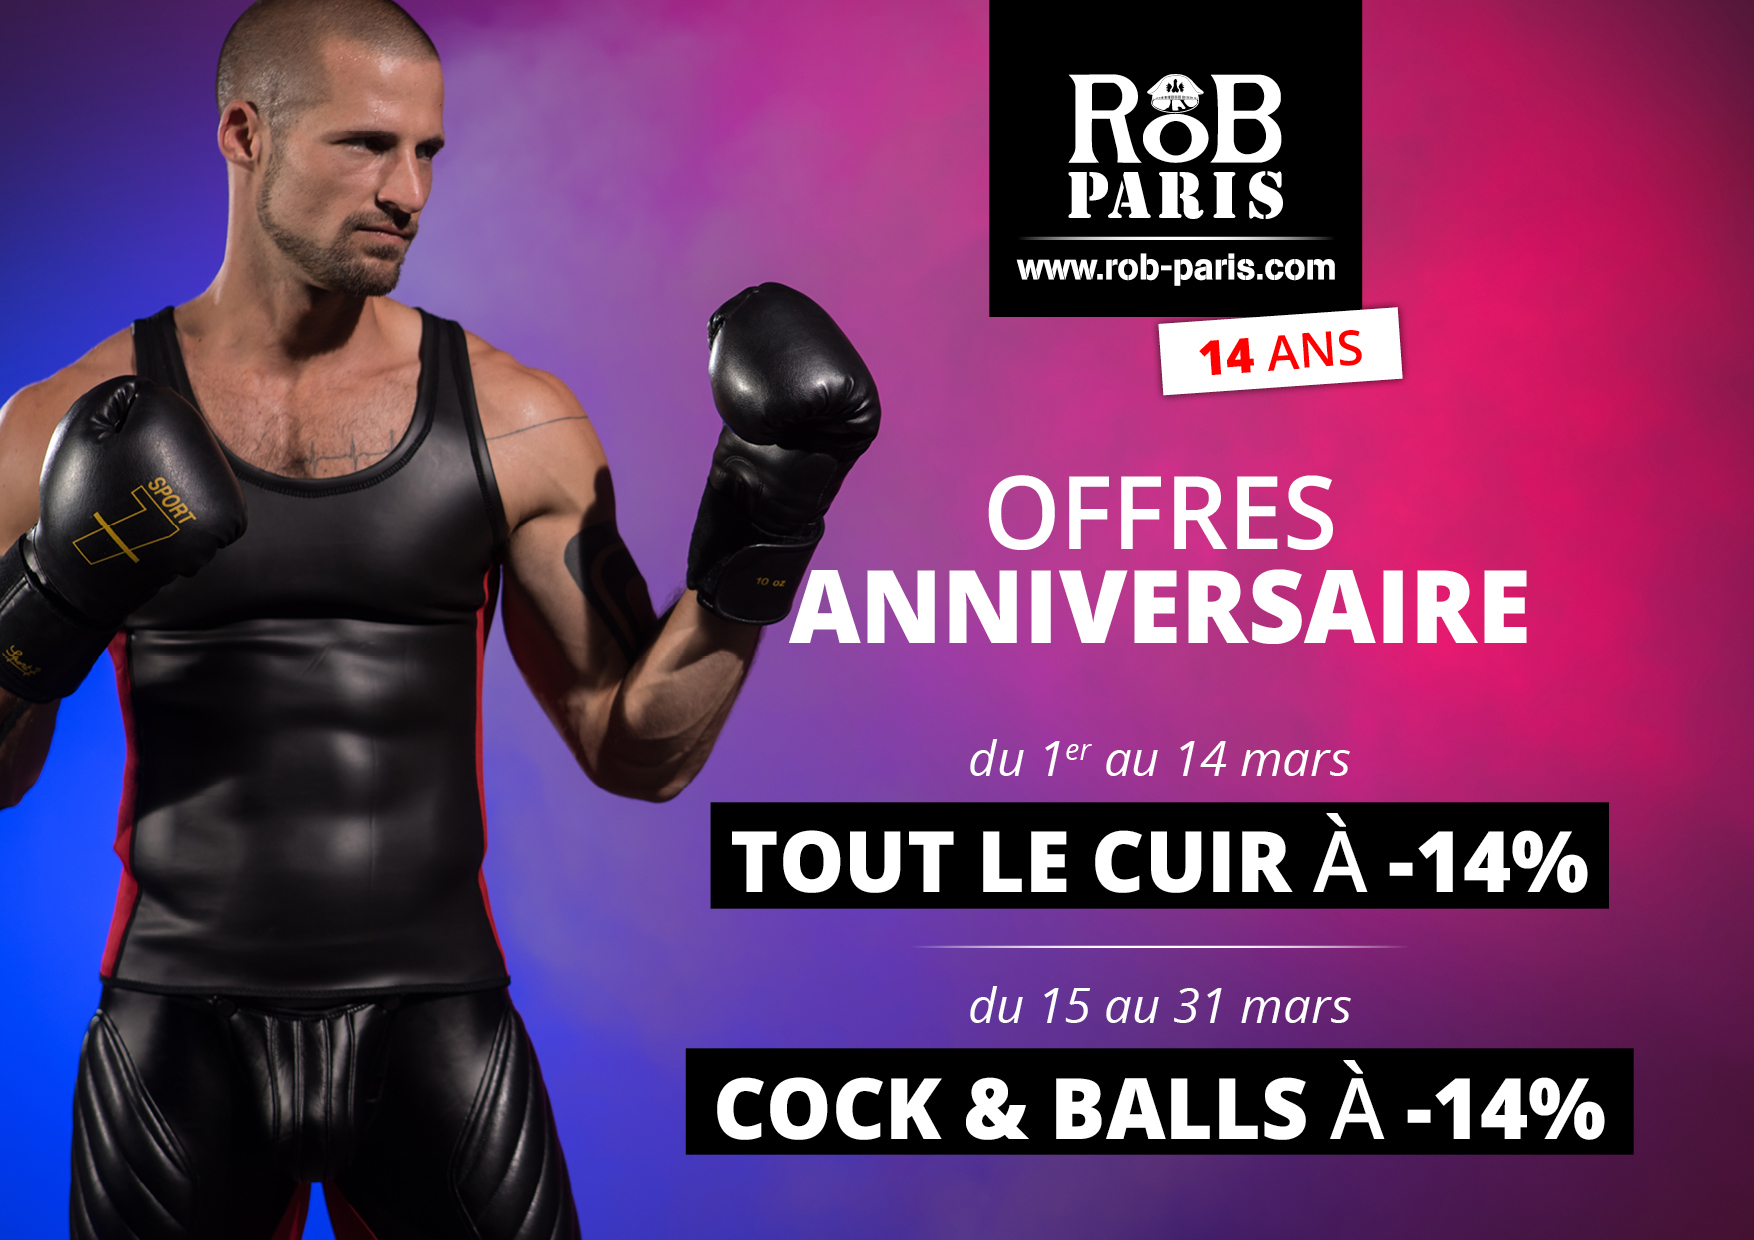 Anniversaire RoB Paris